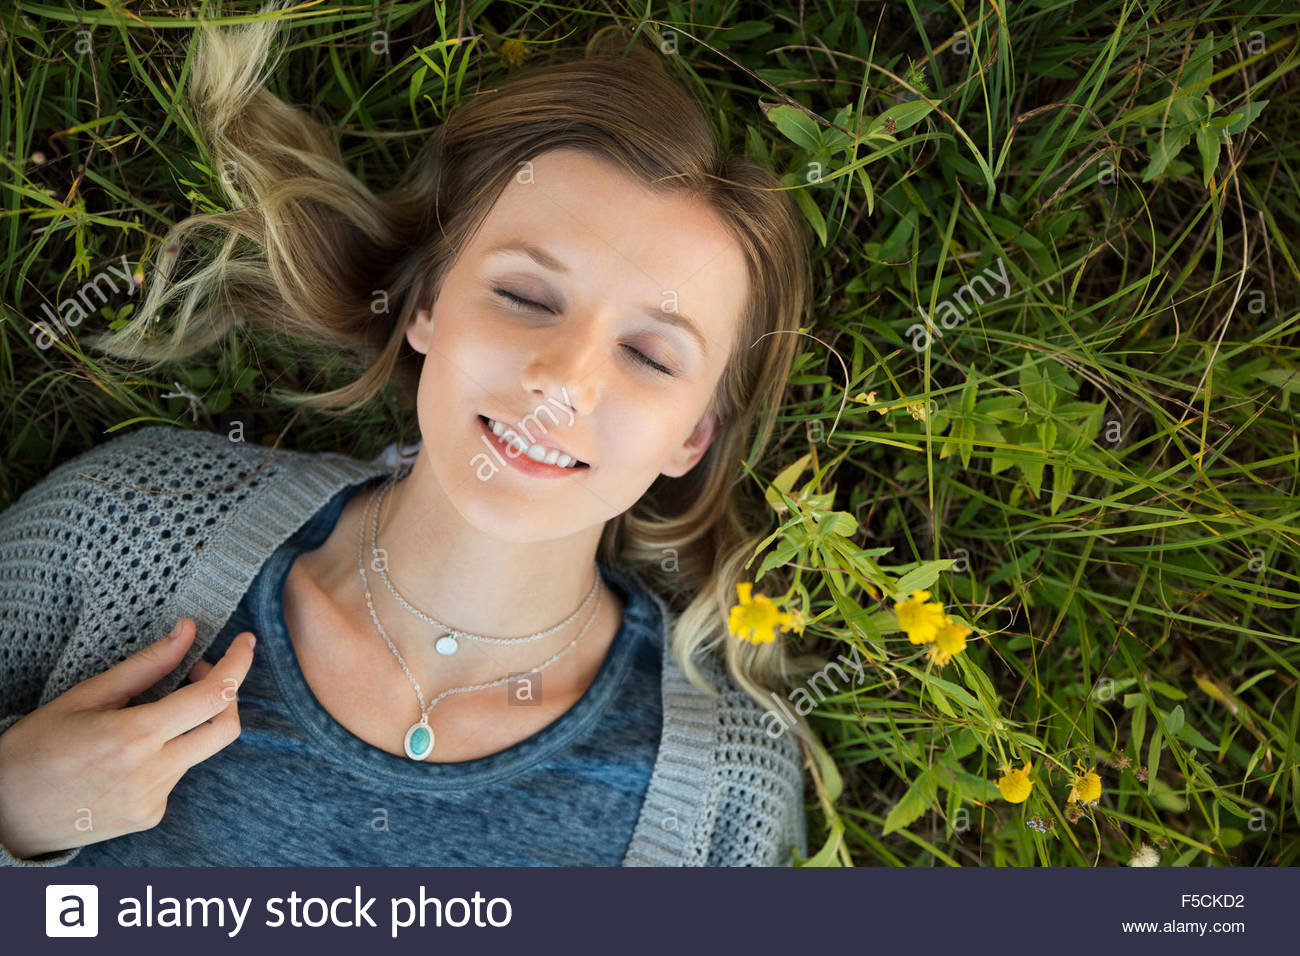 Overhead view serene young woman laying in grass - Stock Image